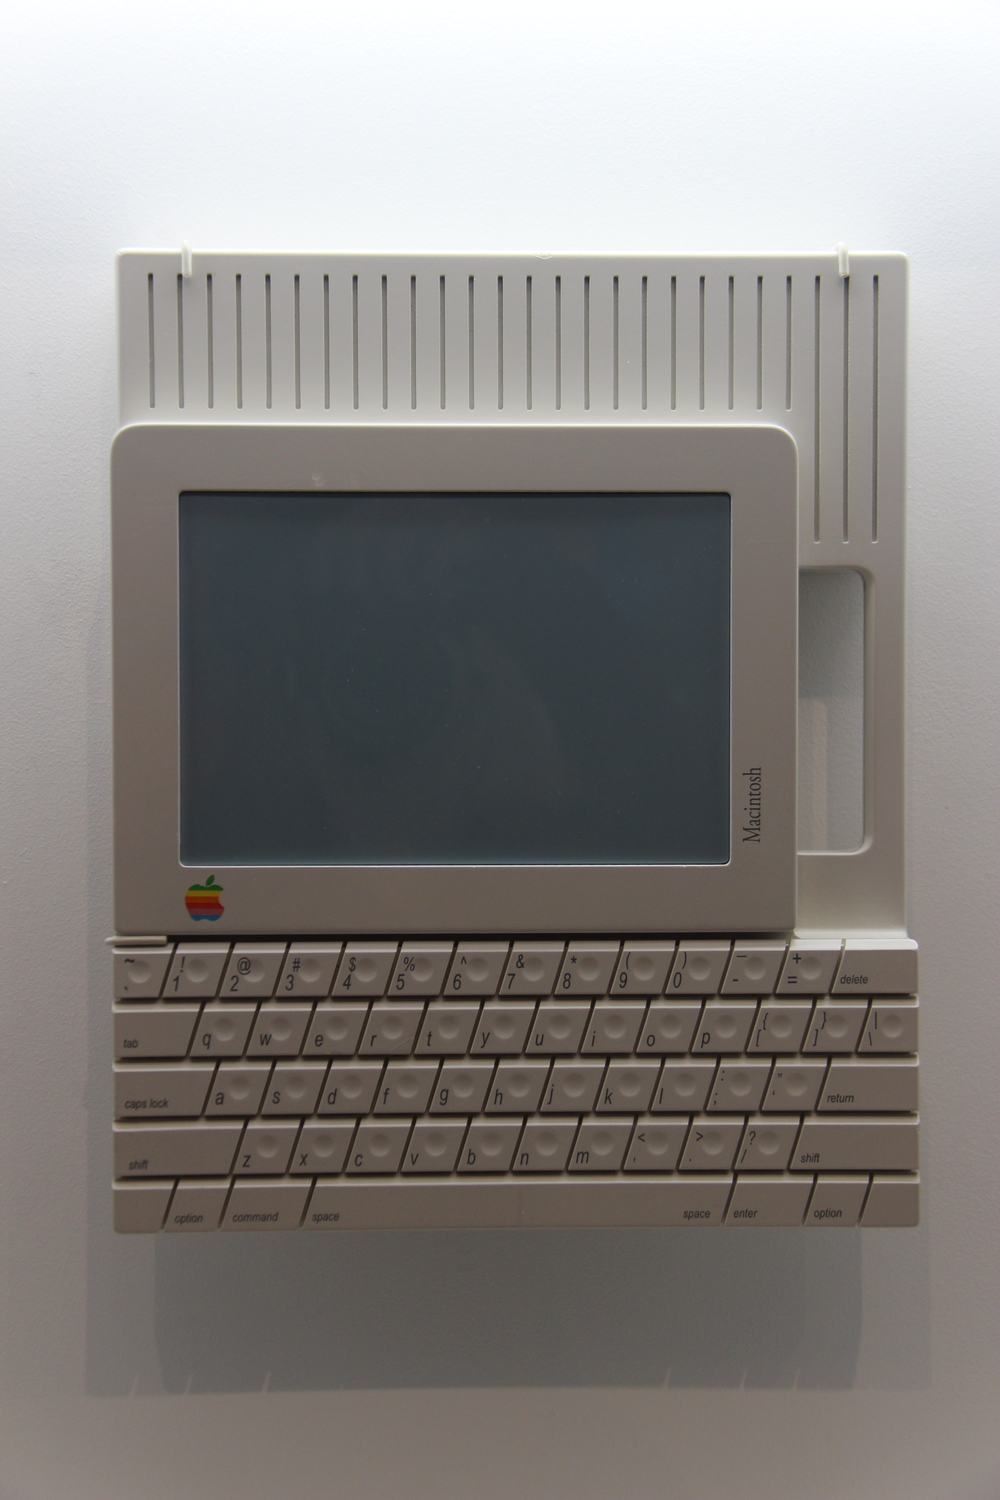 1984 Macintosh prototype